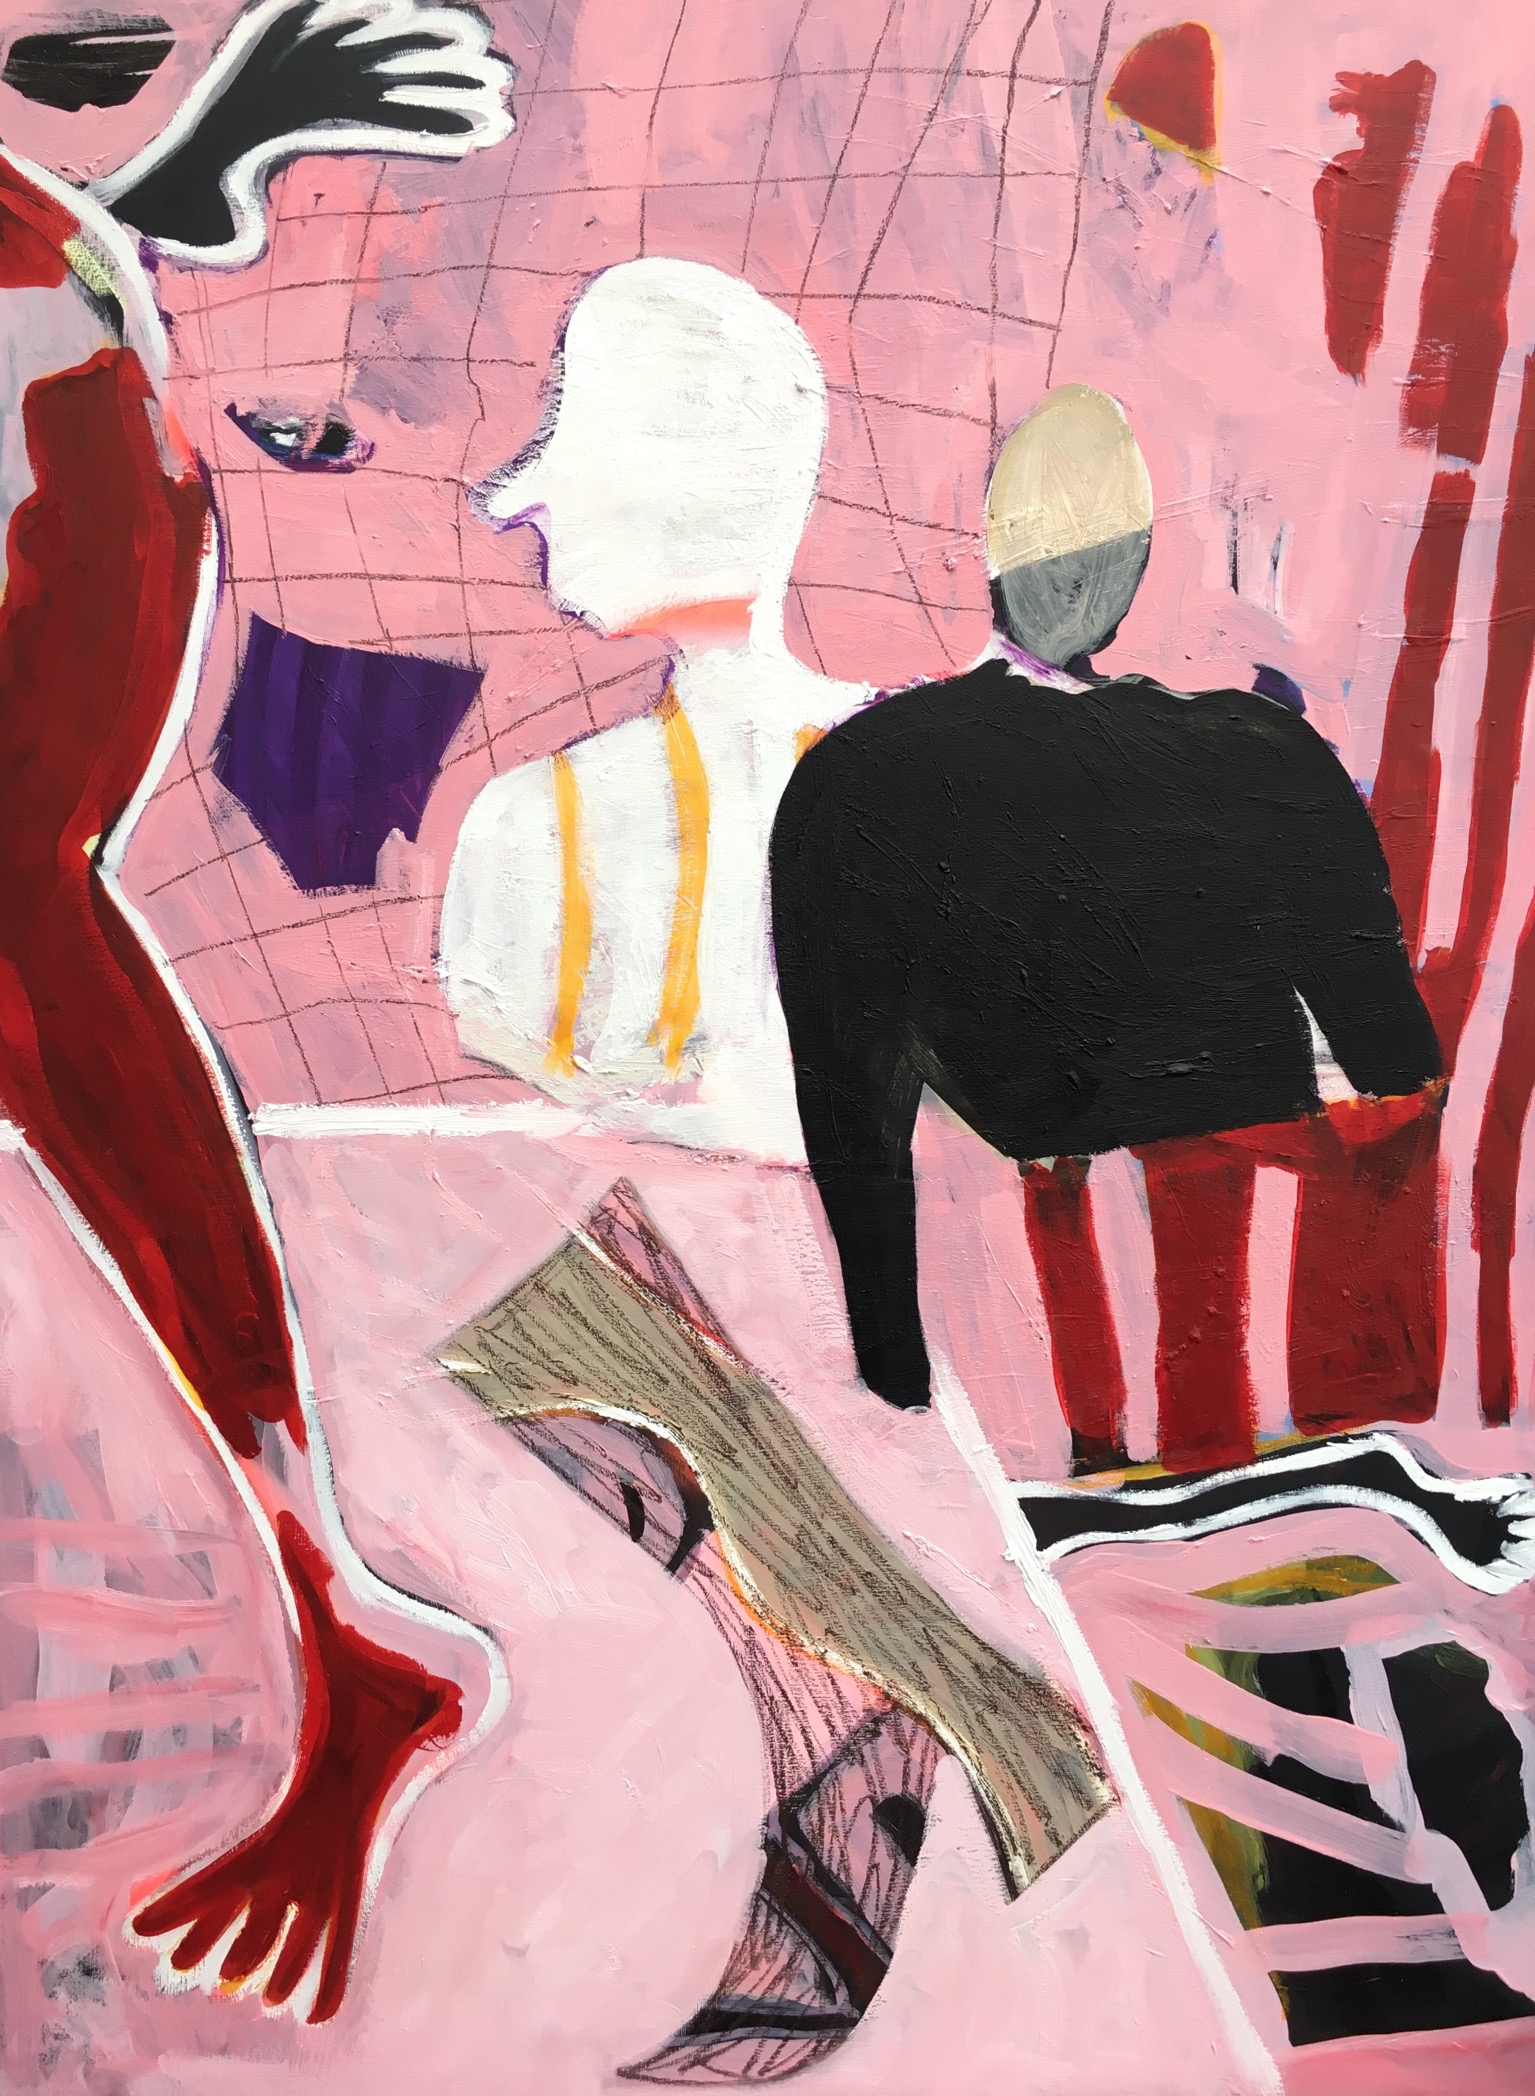 'Can you please get your feet off my table', Acrylic, oil, oil bar and oil pastel on canvas, 89x120cm